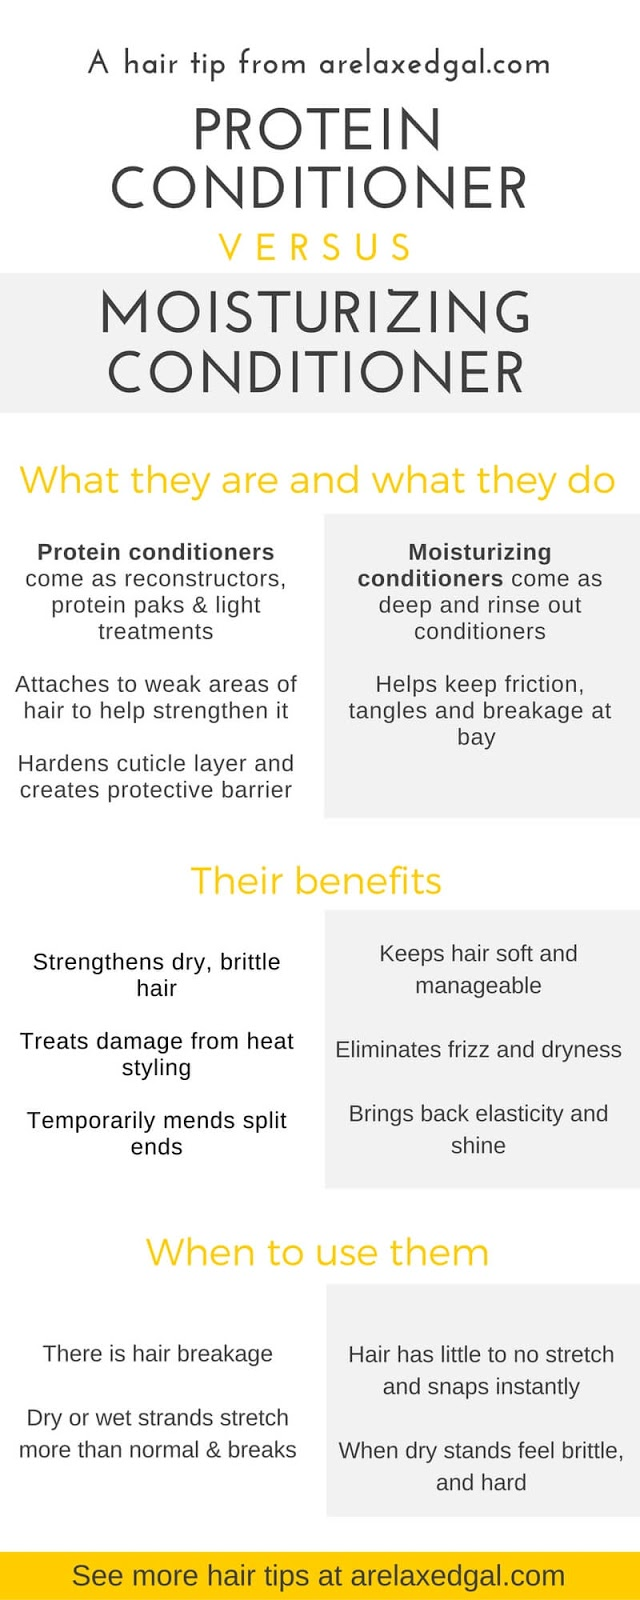 See what makes a conditioner protein or moisture based, the benefits of each and how to determine which one you should use. | arelaxedgal.com